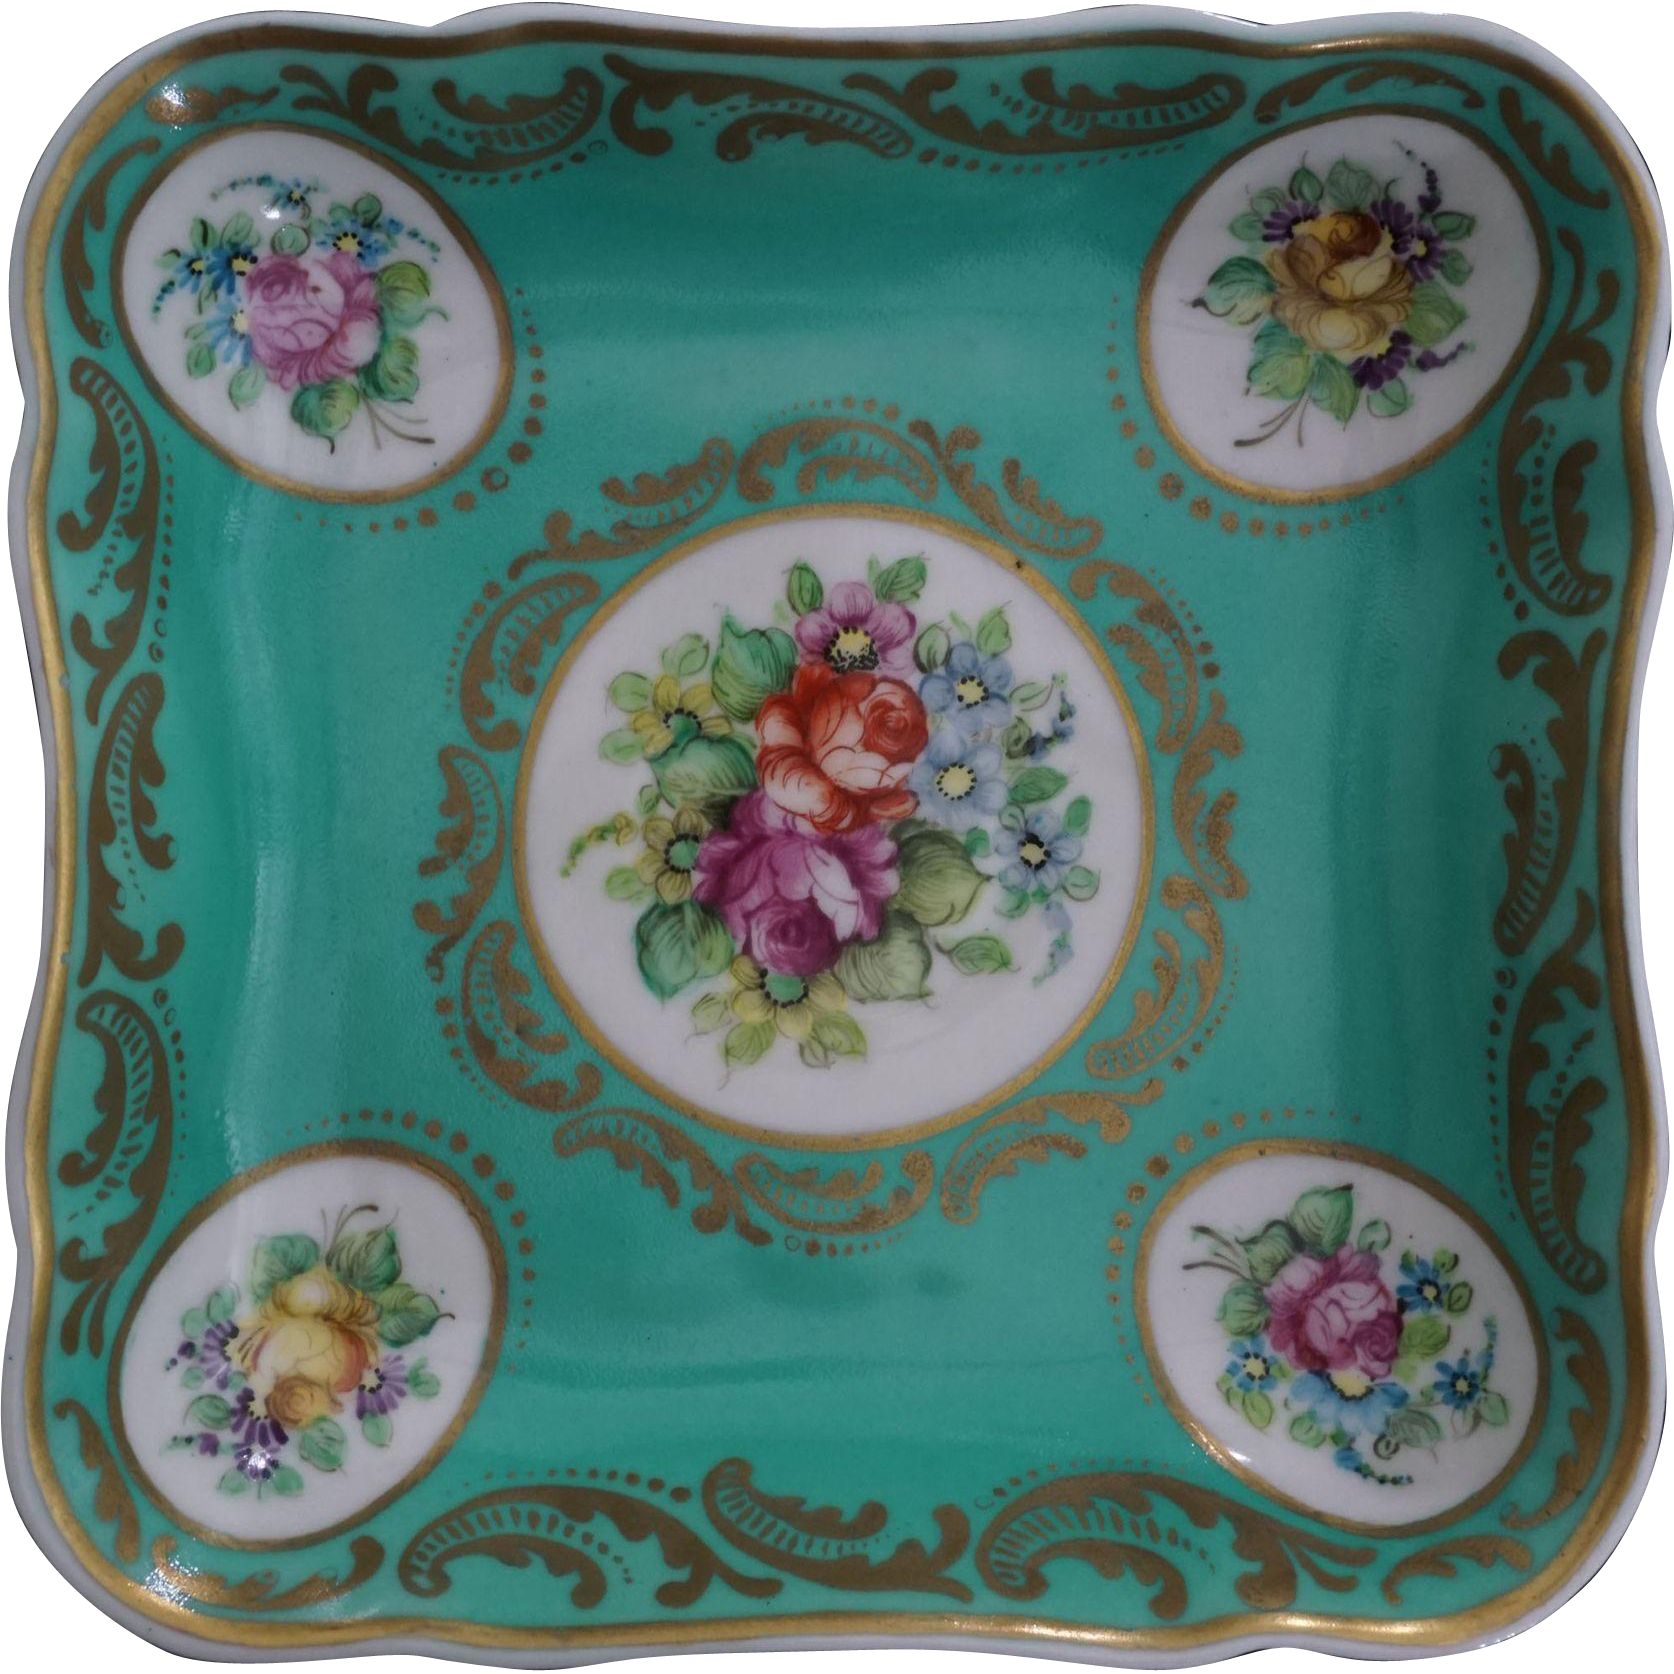 Turquoise Square Porcelain Bowl Floral Medallions Signed - 19th Century, Continental